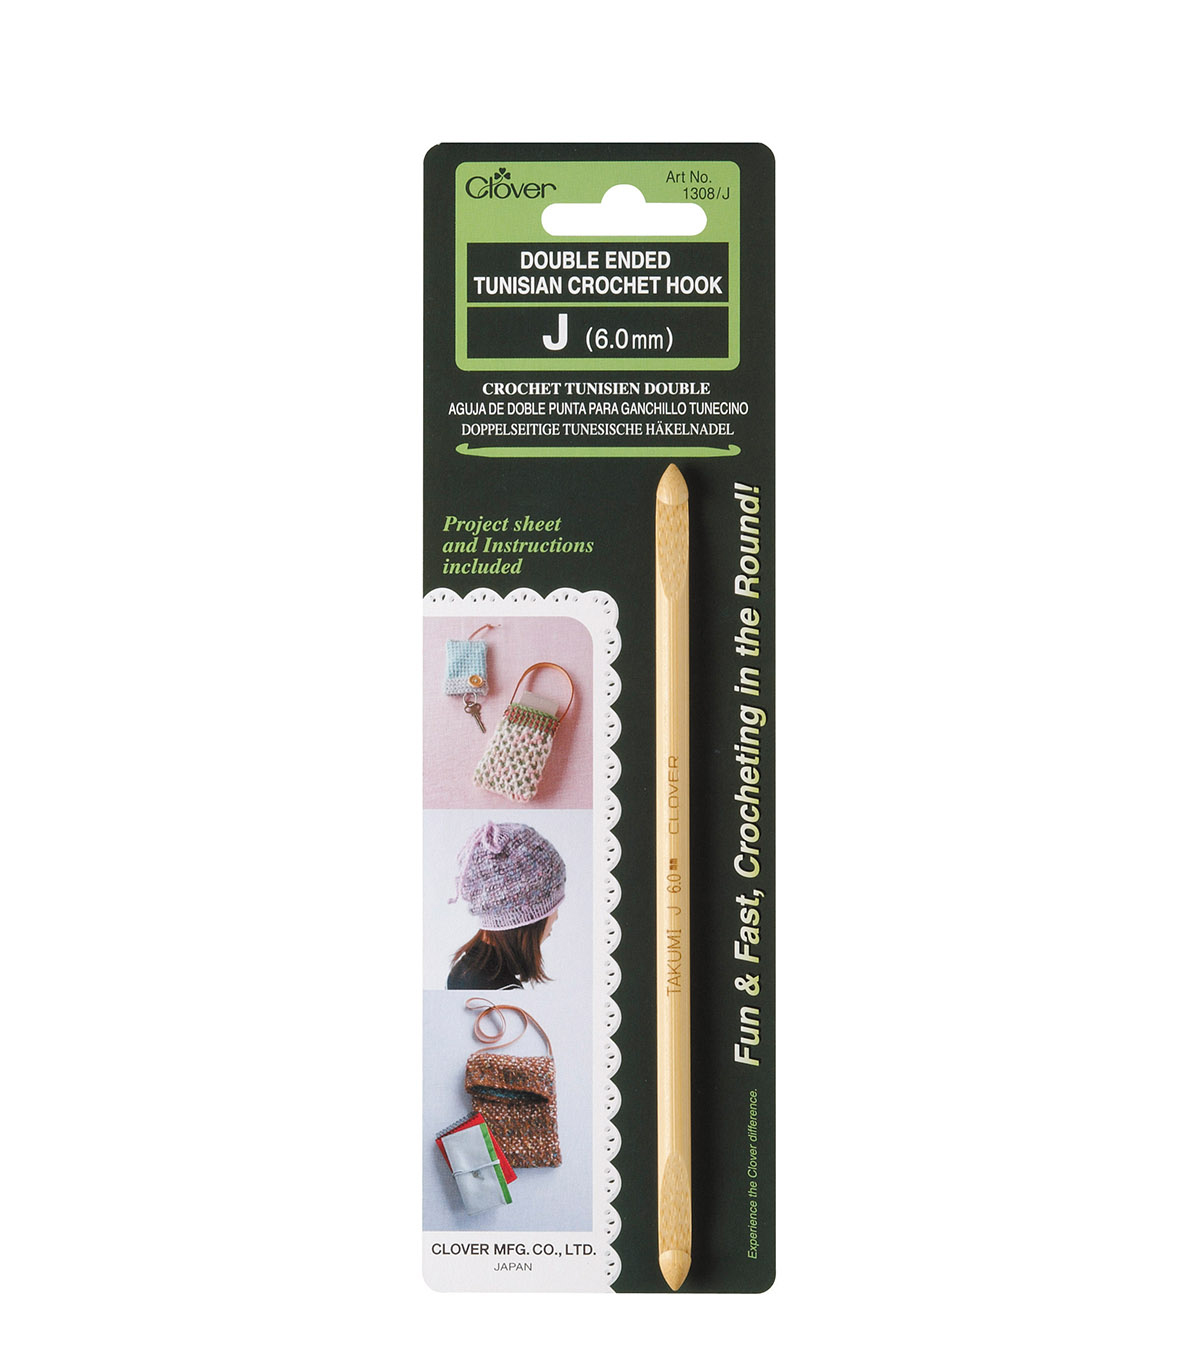 Clover Double Ended Tunisian Crochet Hook J-